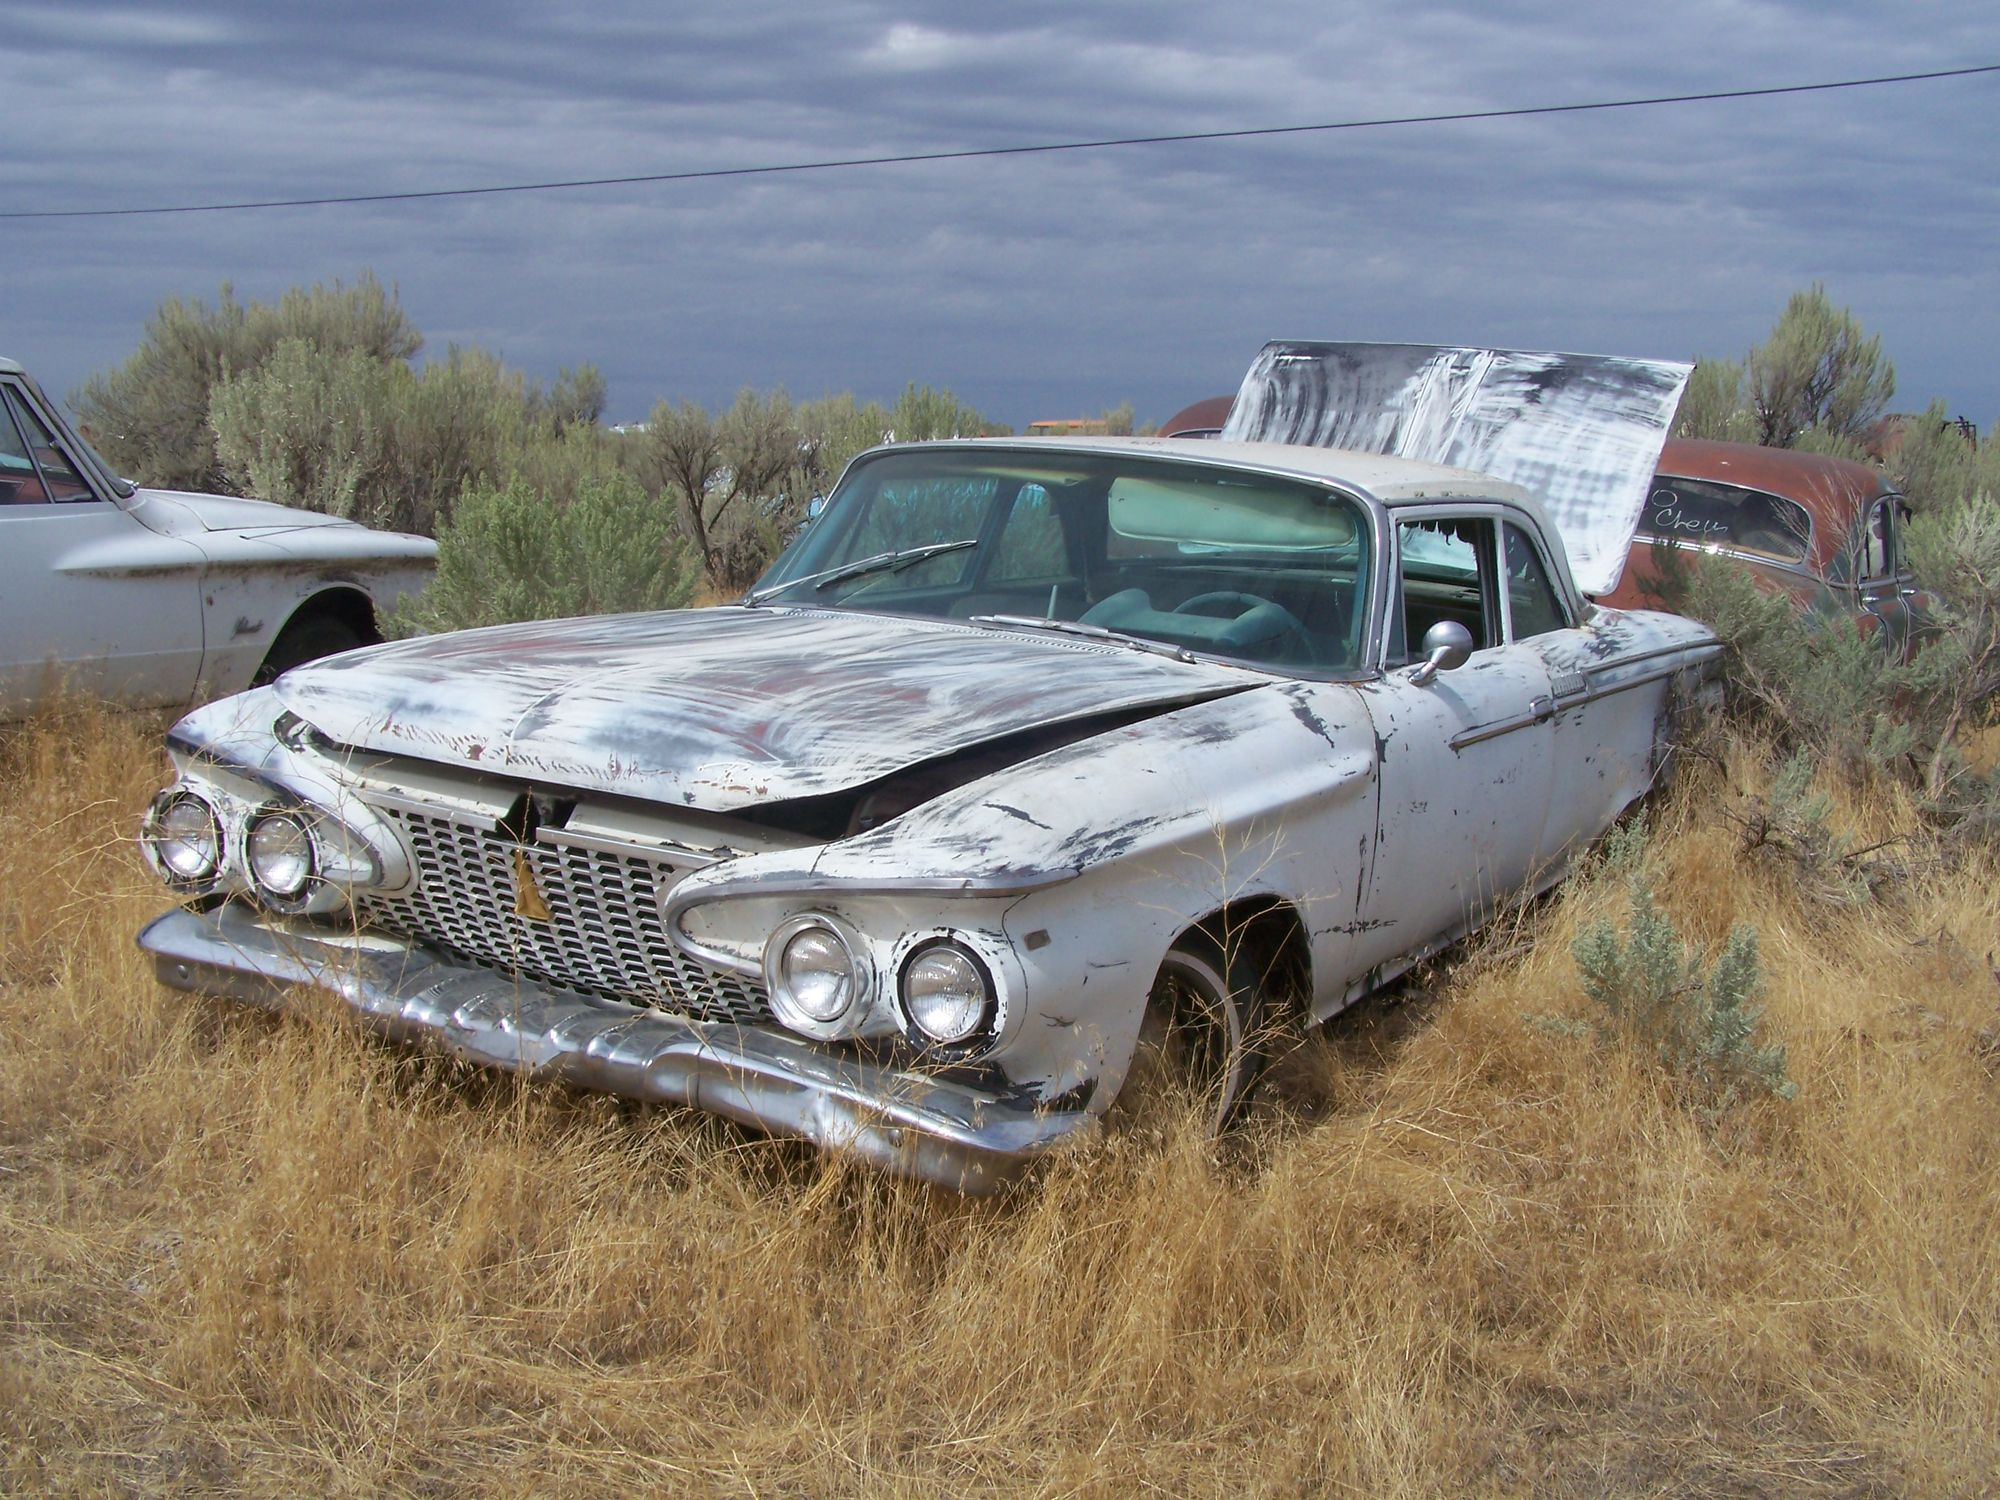 Junkyard tours – 8,000 cars revisited | Barn finds, Cars and Plymouth